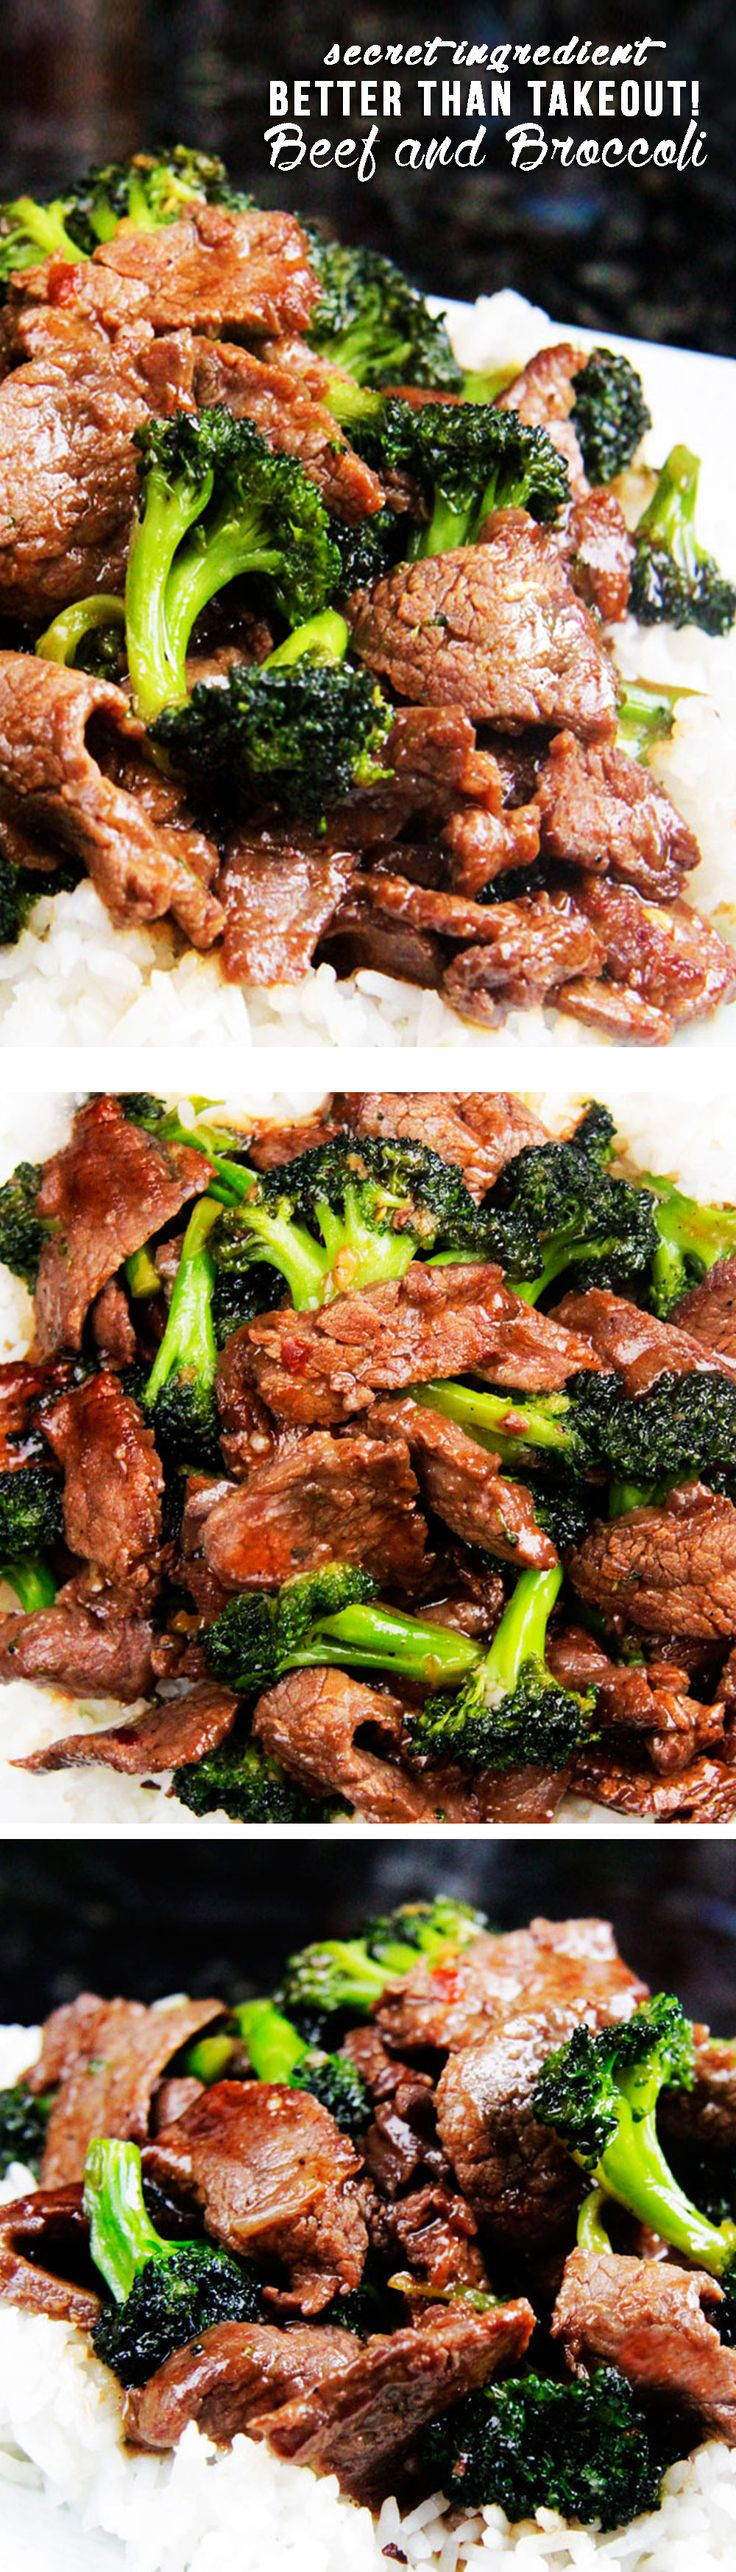 ... Beef Broccoli Recipe, Beef Recipe, Beef Dinner, Brocolli Recipe, Beef